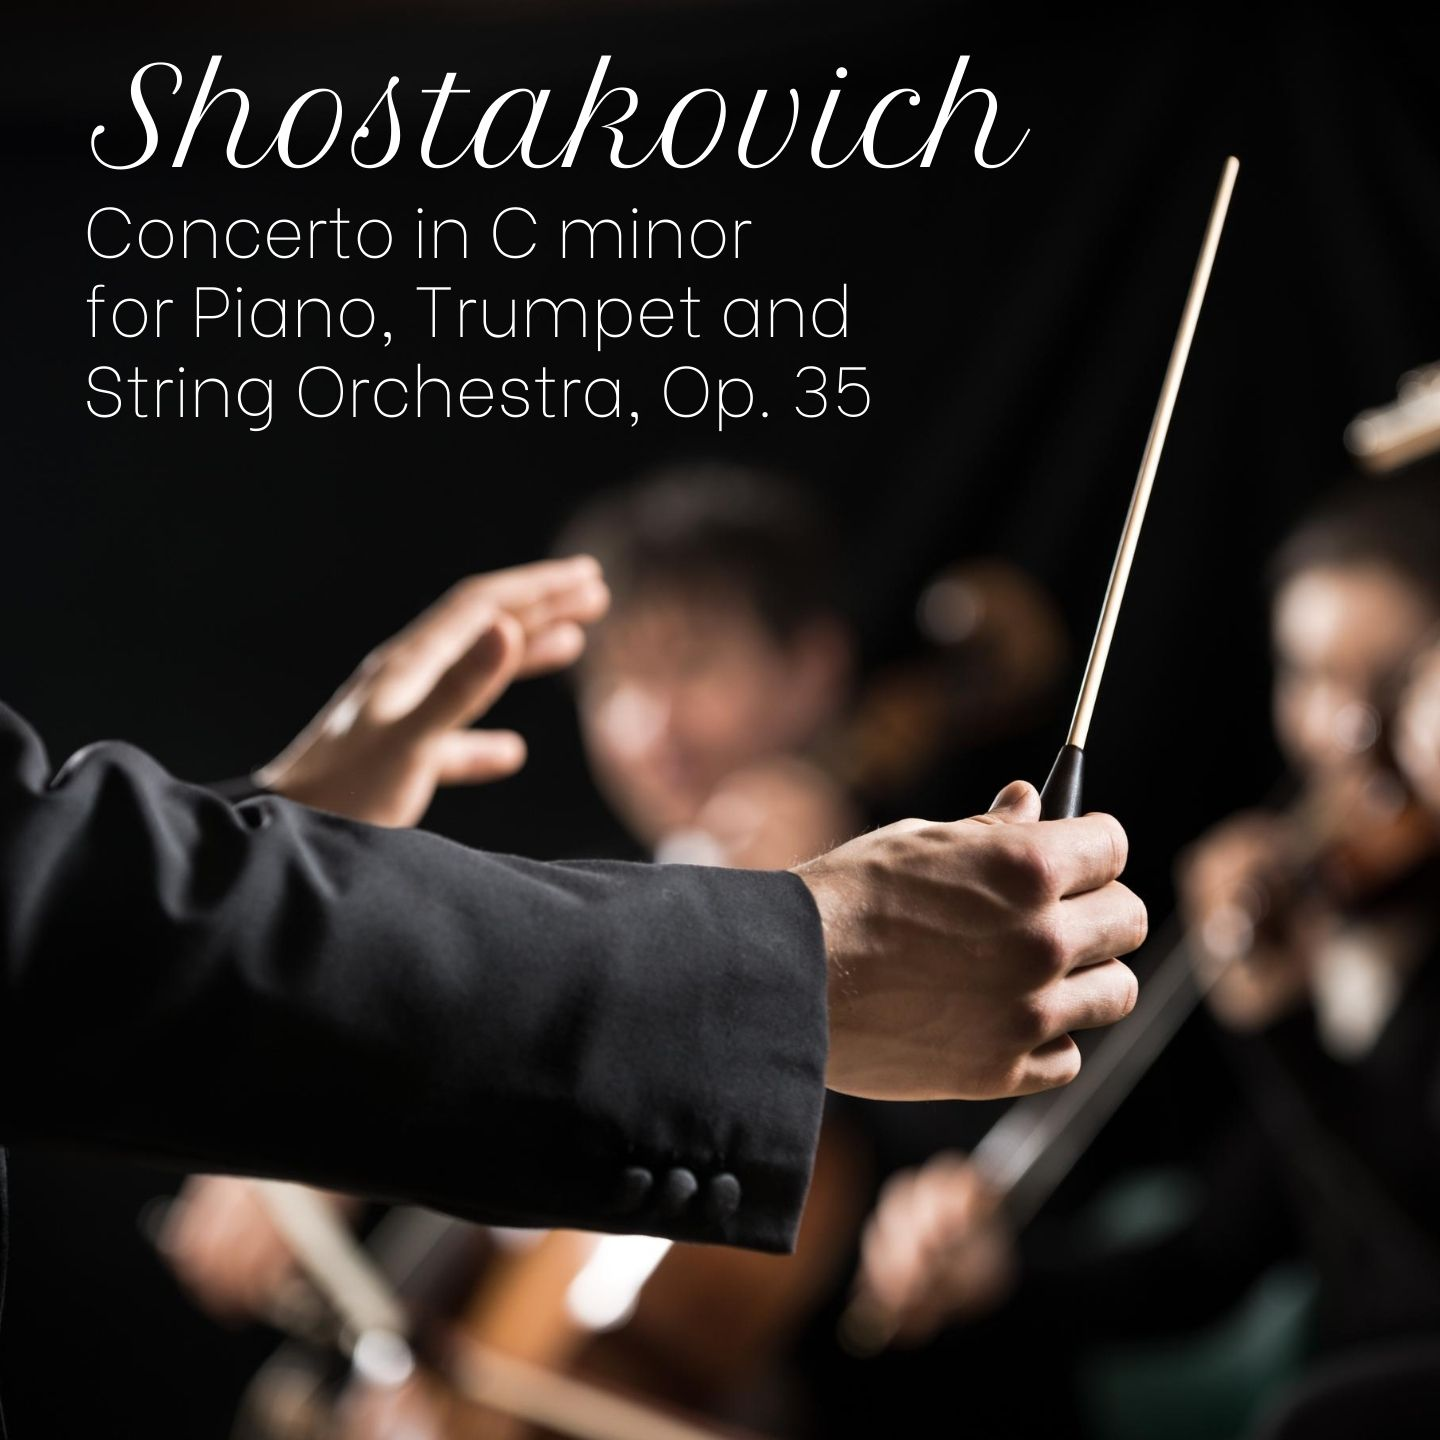 Shostakovich: Concerto in C minor for Piano, Trumpet and String Orchestra, Op. 35